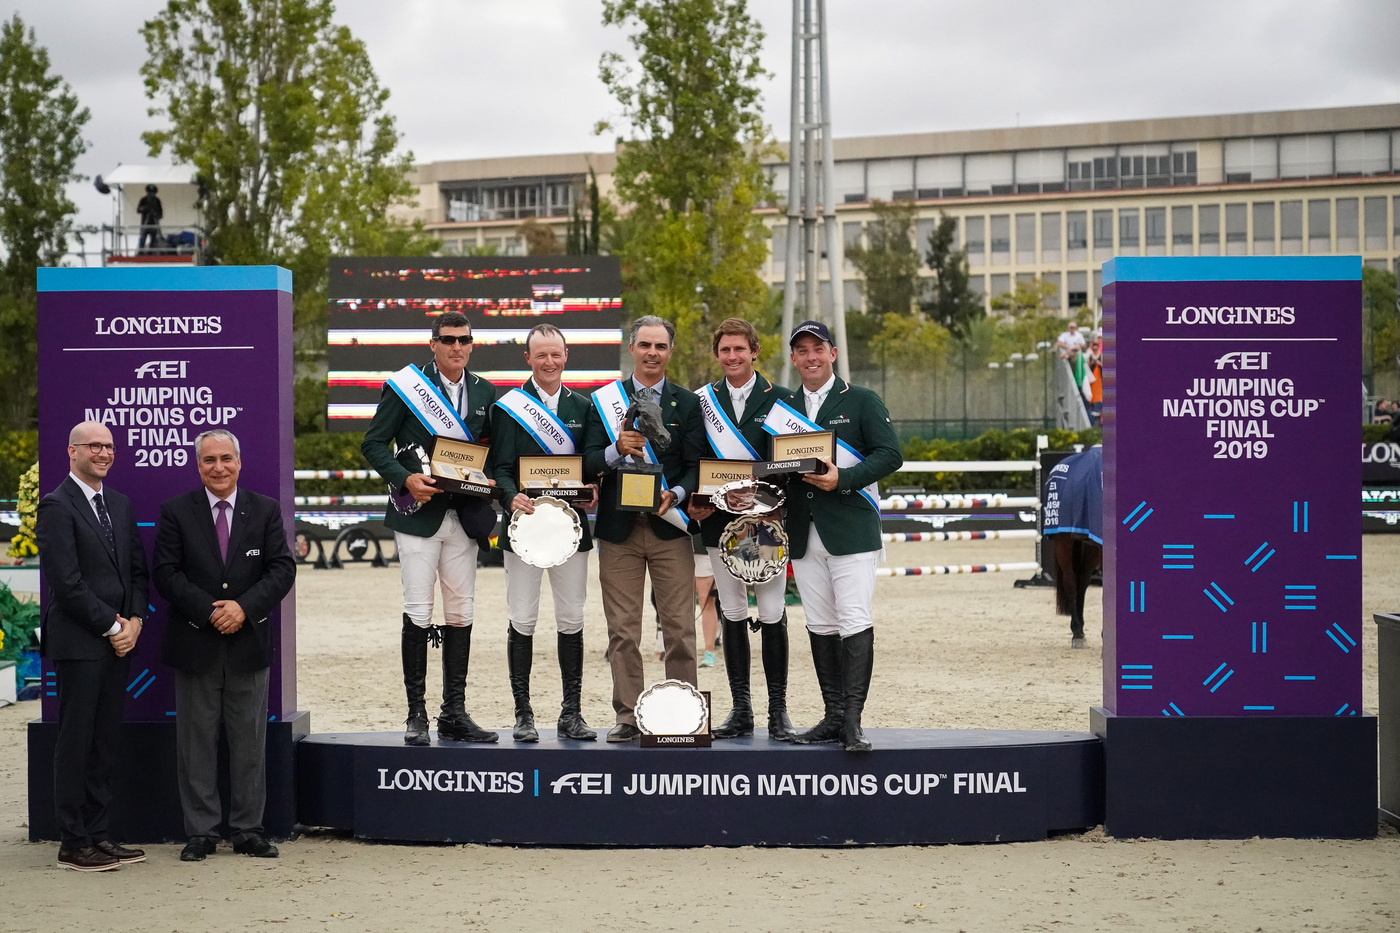 Longines Equestrian Event: Thrilling sports performances and emotional moments at the Longines FEI Jumping Nations CupTM Final with Longines Ambassador of Elegance Simon Baker 1